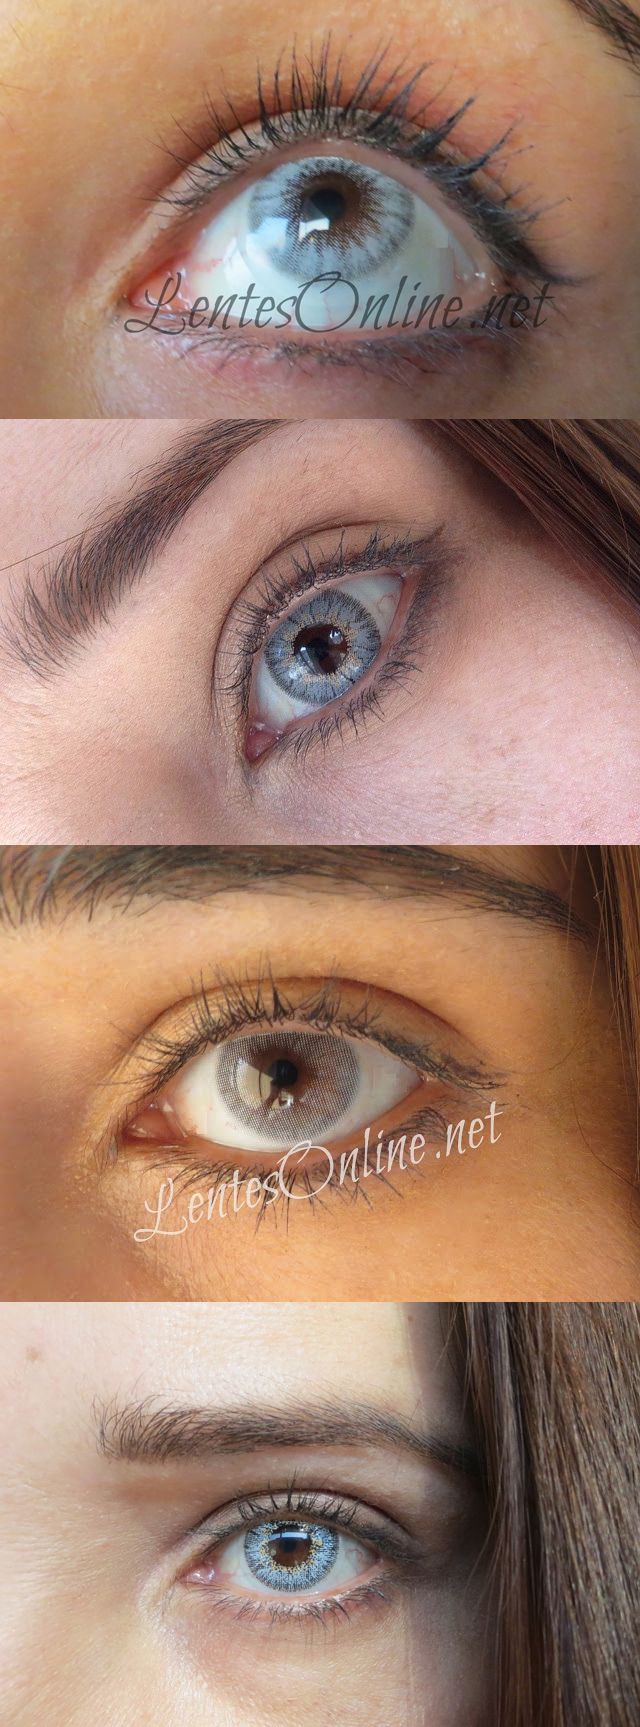 30 best images about Contact lenses on Pinterest | Italy ...